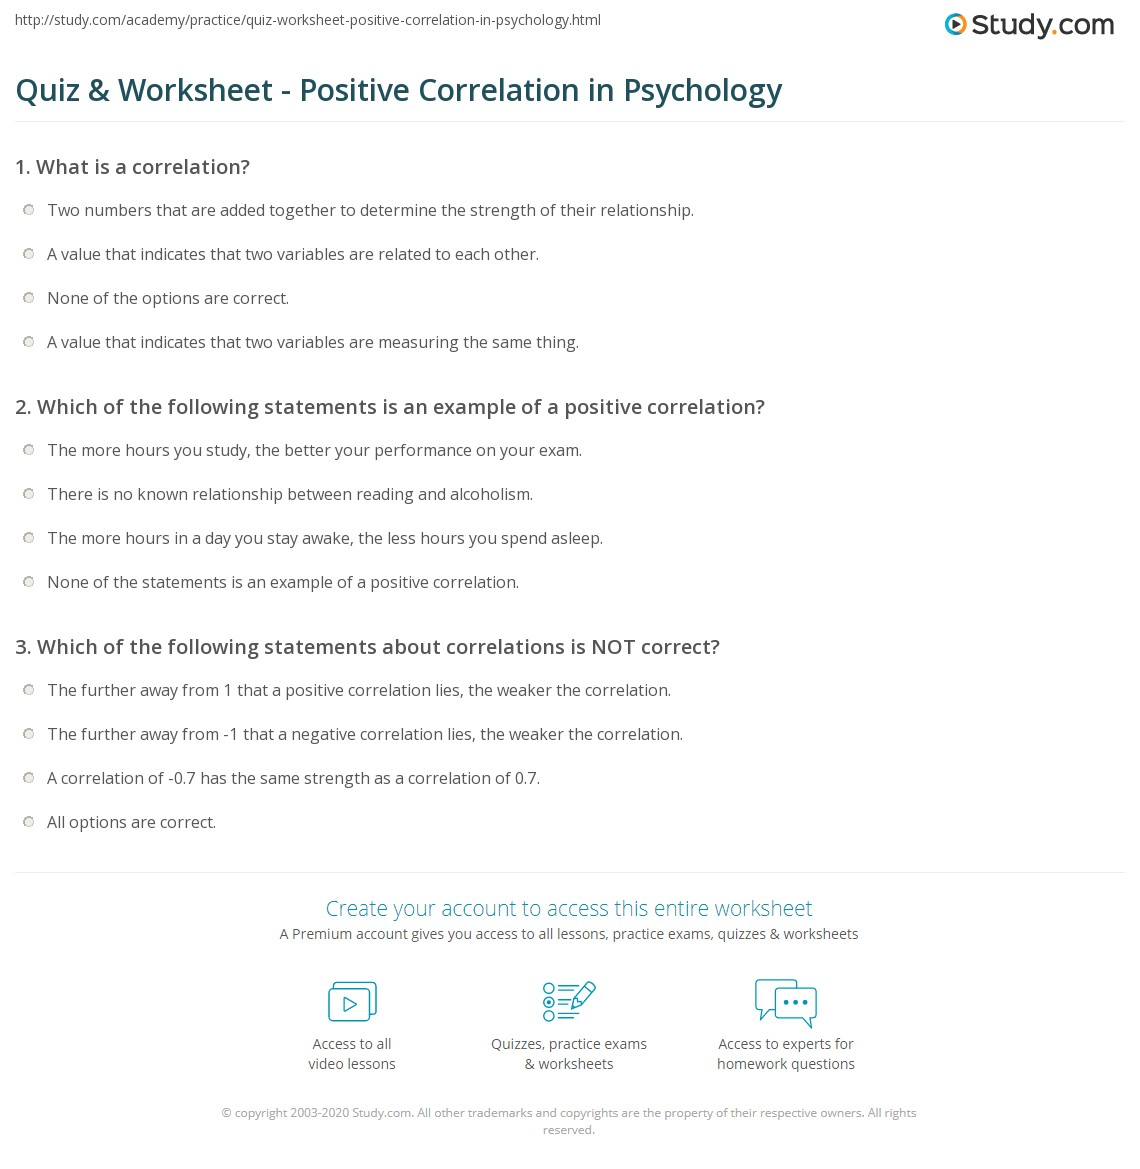 dating psychology questions Understanding the psychology behind falling in love can also help therapists treat people dealing with heartbreak when a therapist understands the meaning that romantic love has in one's life and the traumatic effects of the abrupt and sometimes unexpected end of a relationship, they can address their client's ability to move on and strengthen.